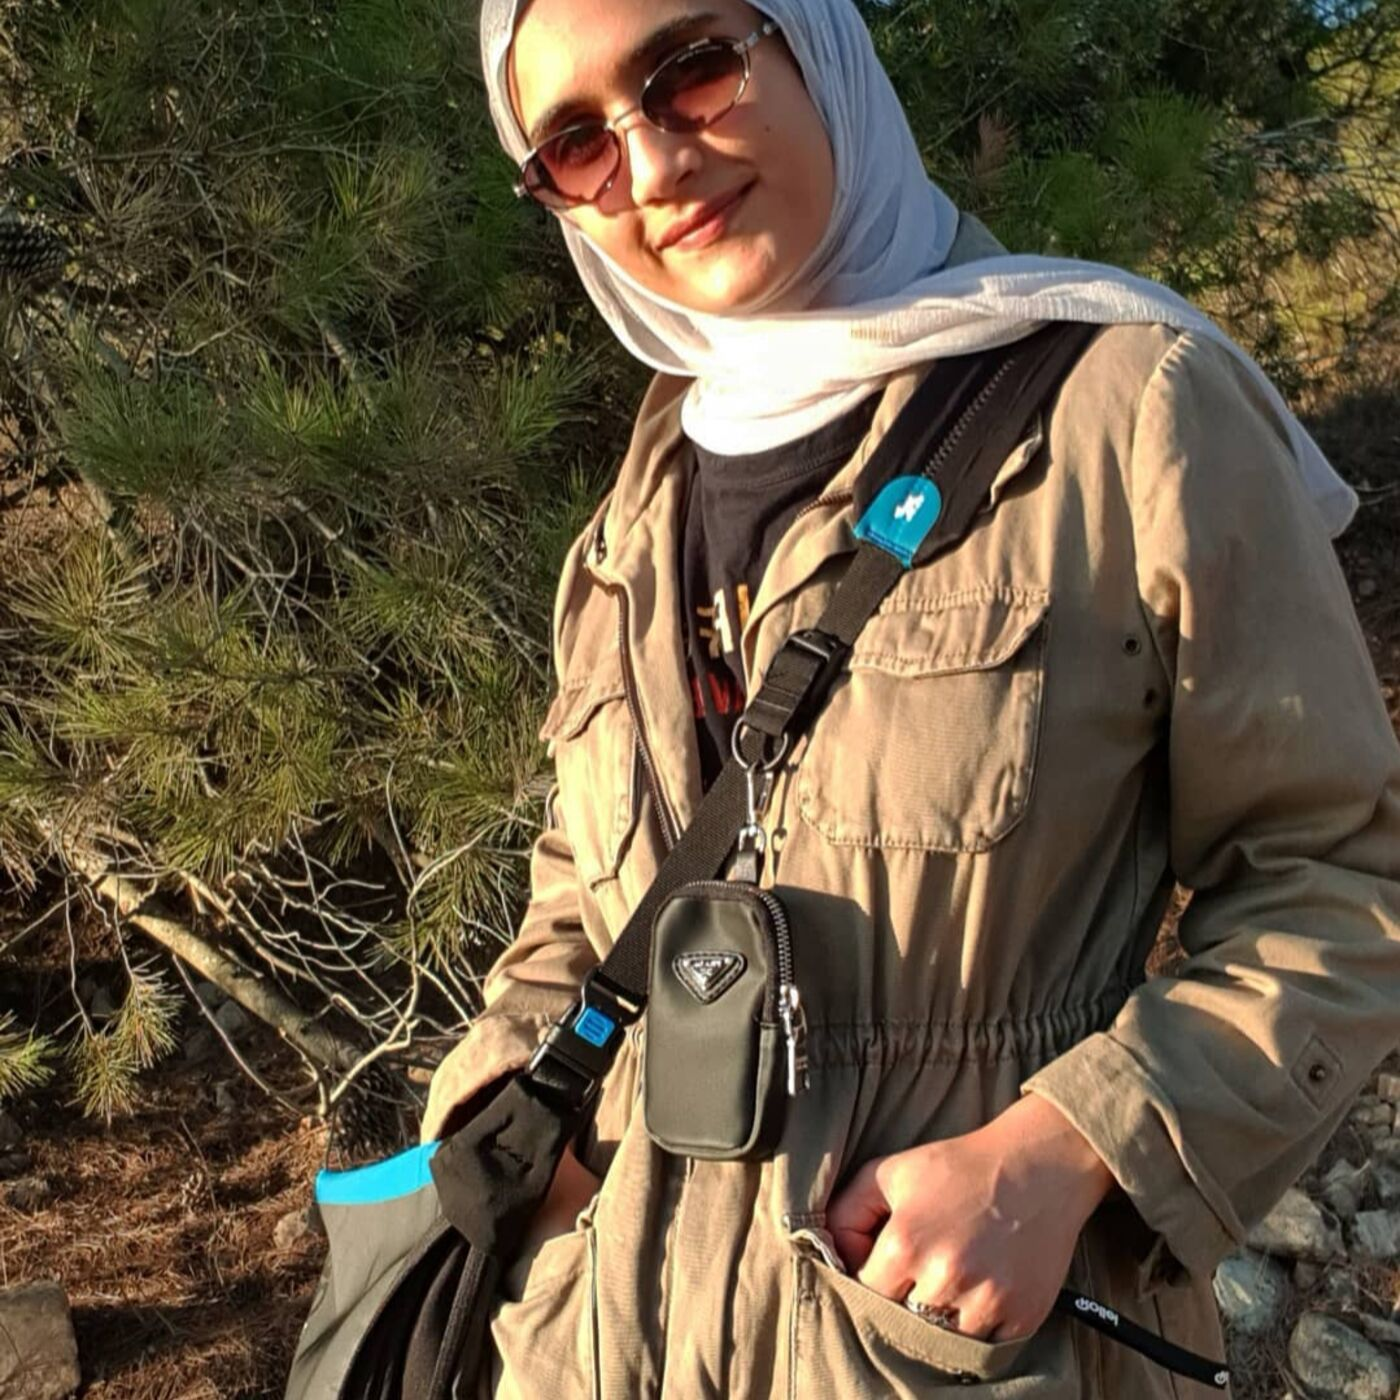 INTERVIEWS WITH INSPIRING PALESTINIANS